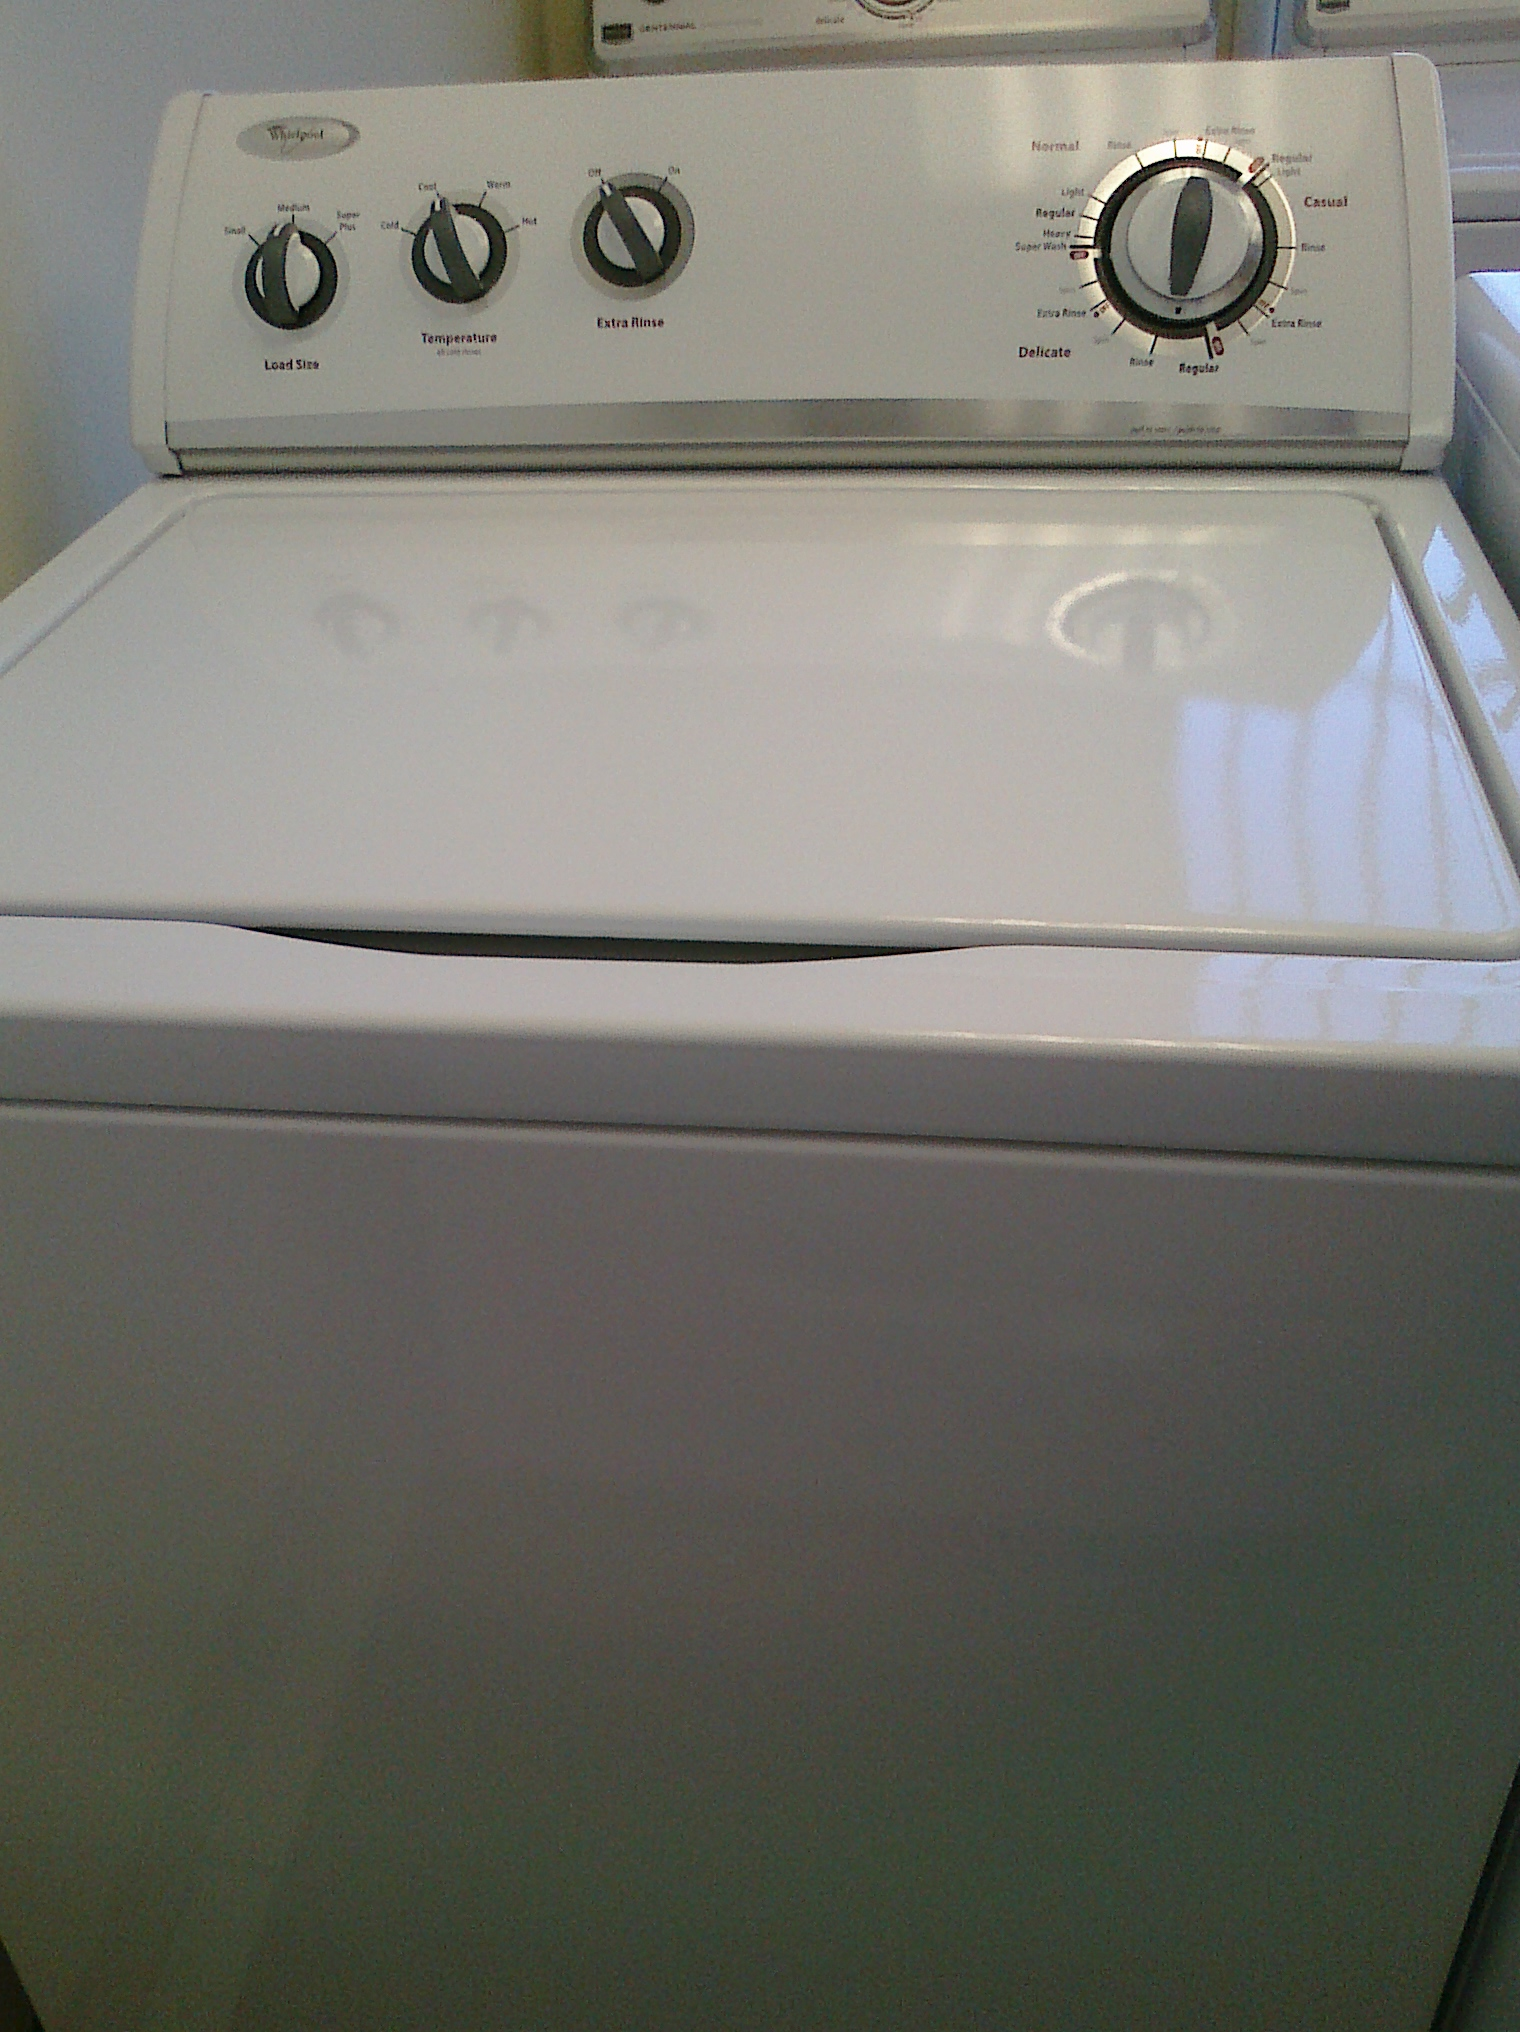 Washer and dryers whirlpool washer and dryers - Whirlpool problems ...